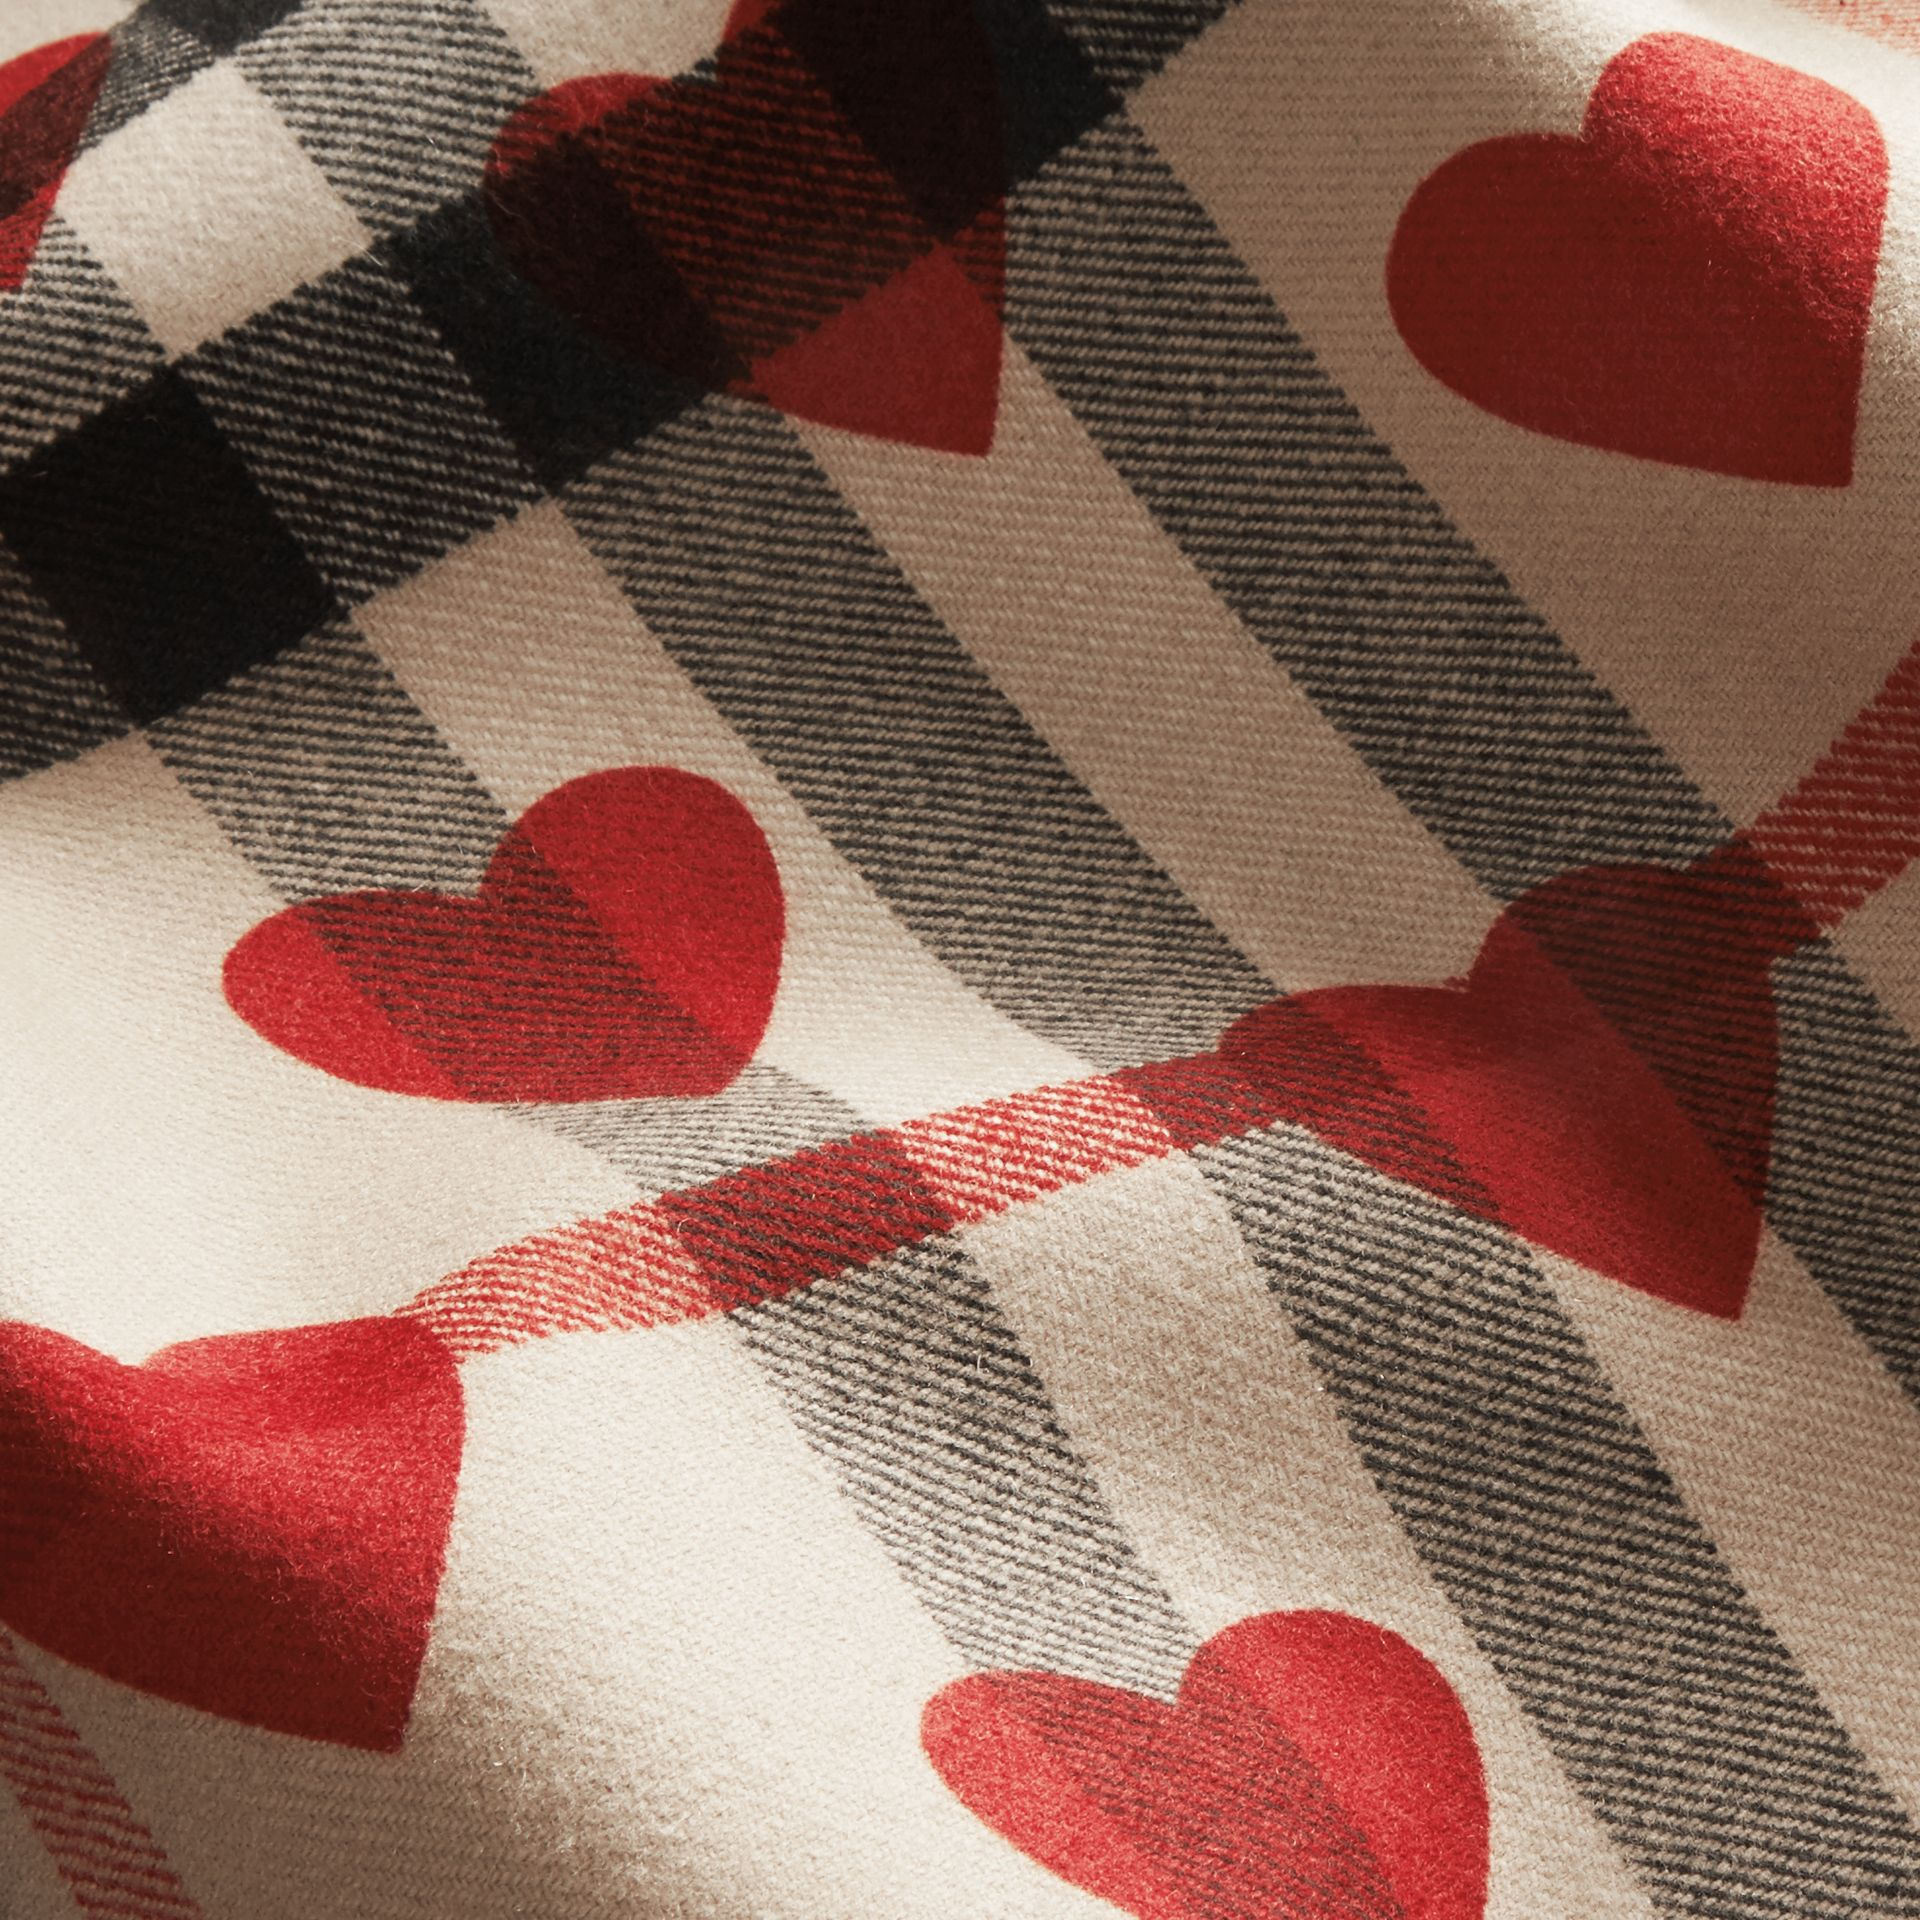 Windsor red Wool Duffle Coat with Check and Hearts Lining Windsor Red - gallery image 2